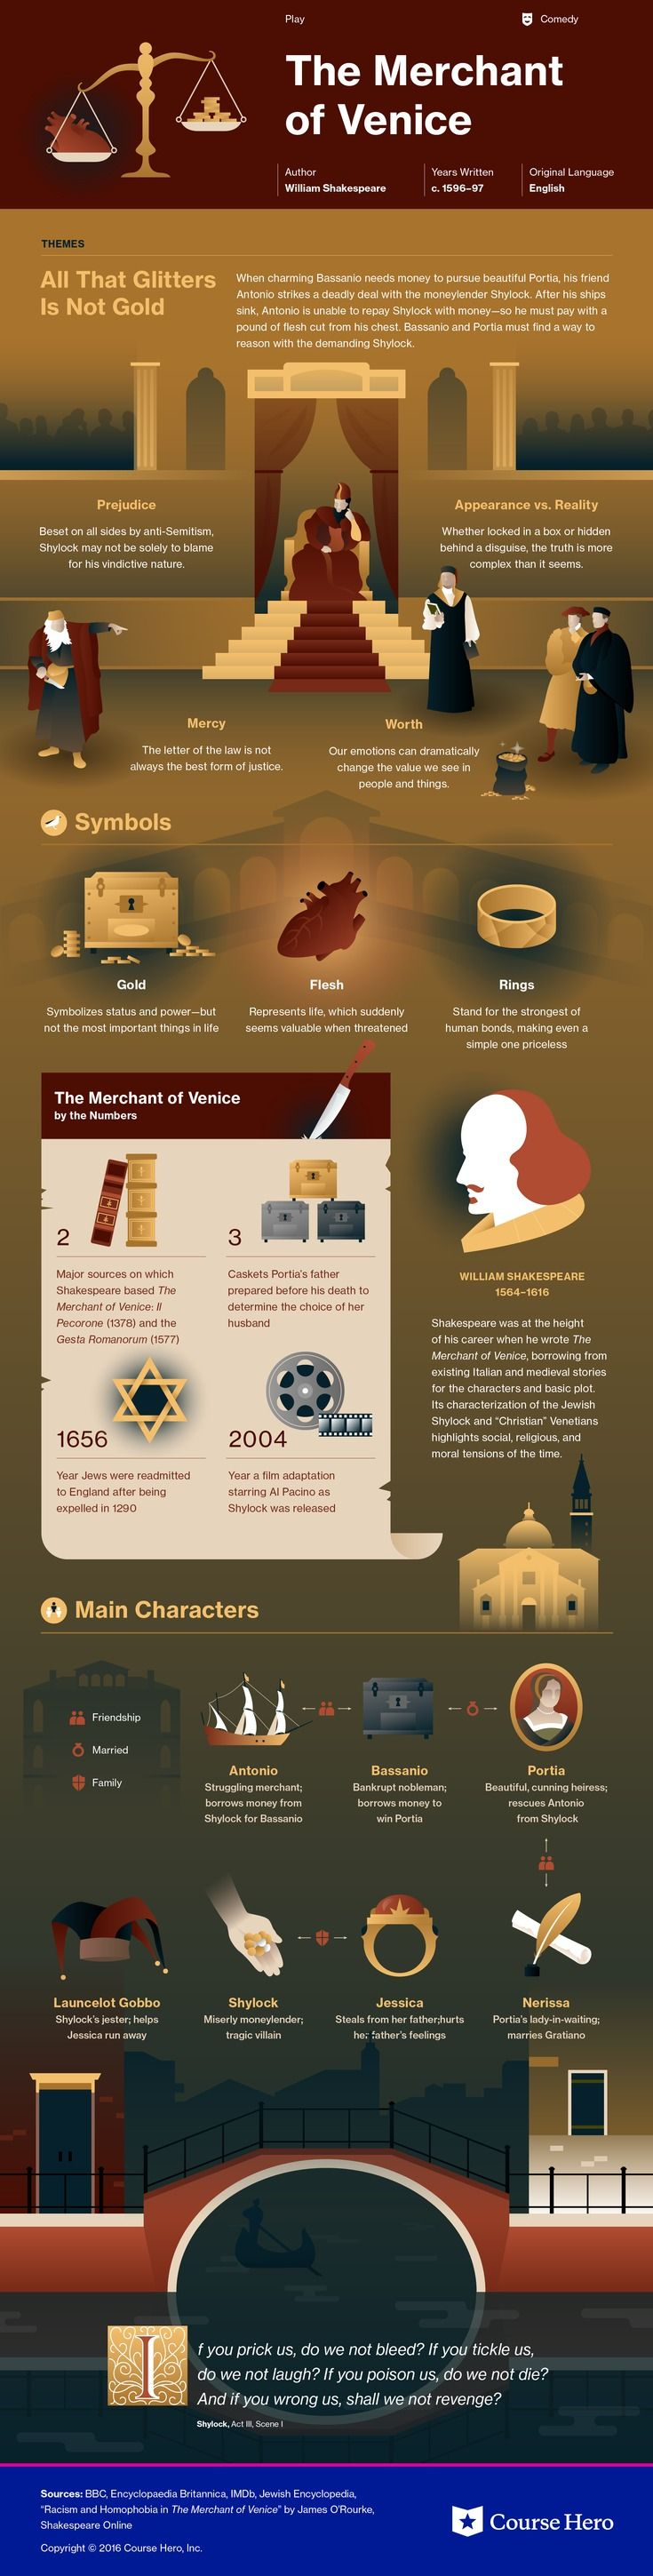 best ideas about the merchant of venice book this coursehero infographic on the merchant of venice is both visually stunning and informative